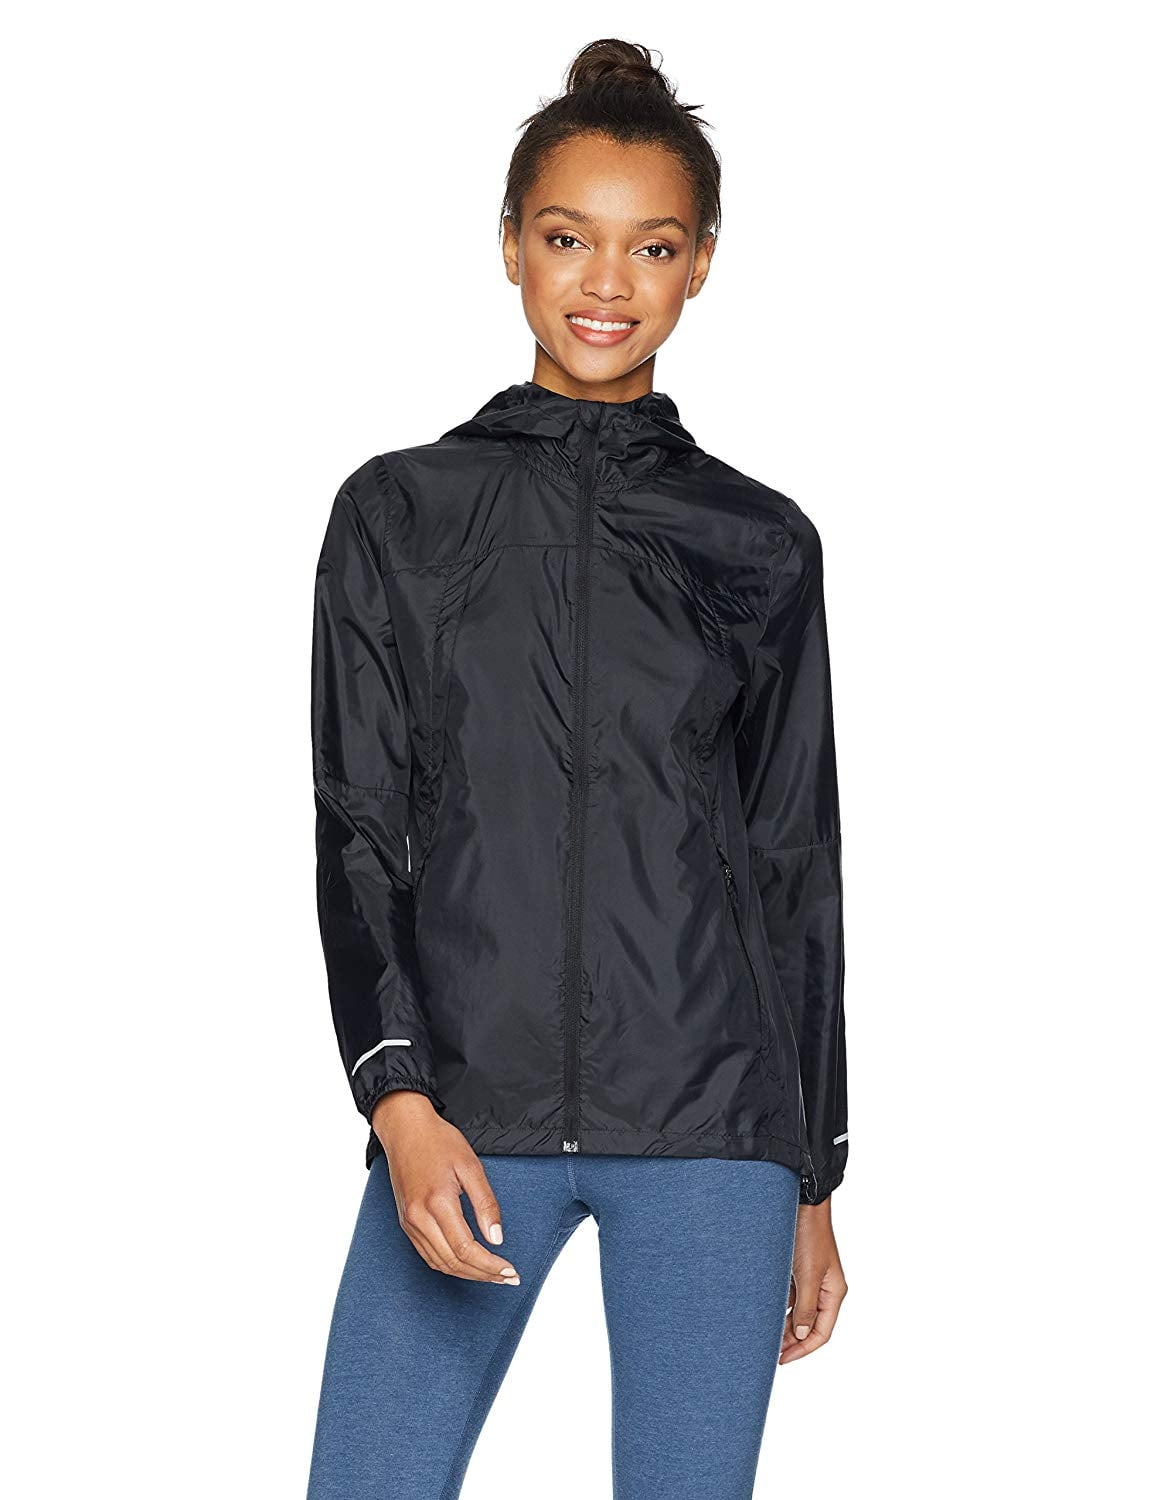 campana Mareo Frotar  ASICS Women's Packable Jacket | If You're a Runner, These 21 Genius  Products From Amazon Are Calling Your Name | POPSUGAR Fitness Photo 19